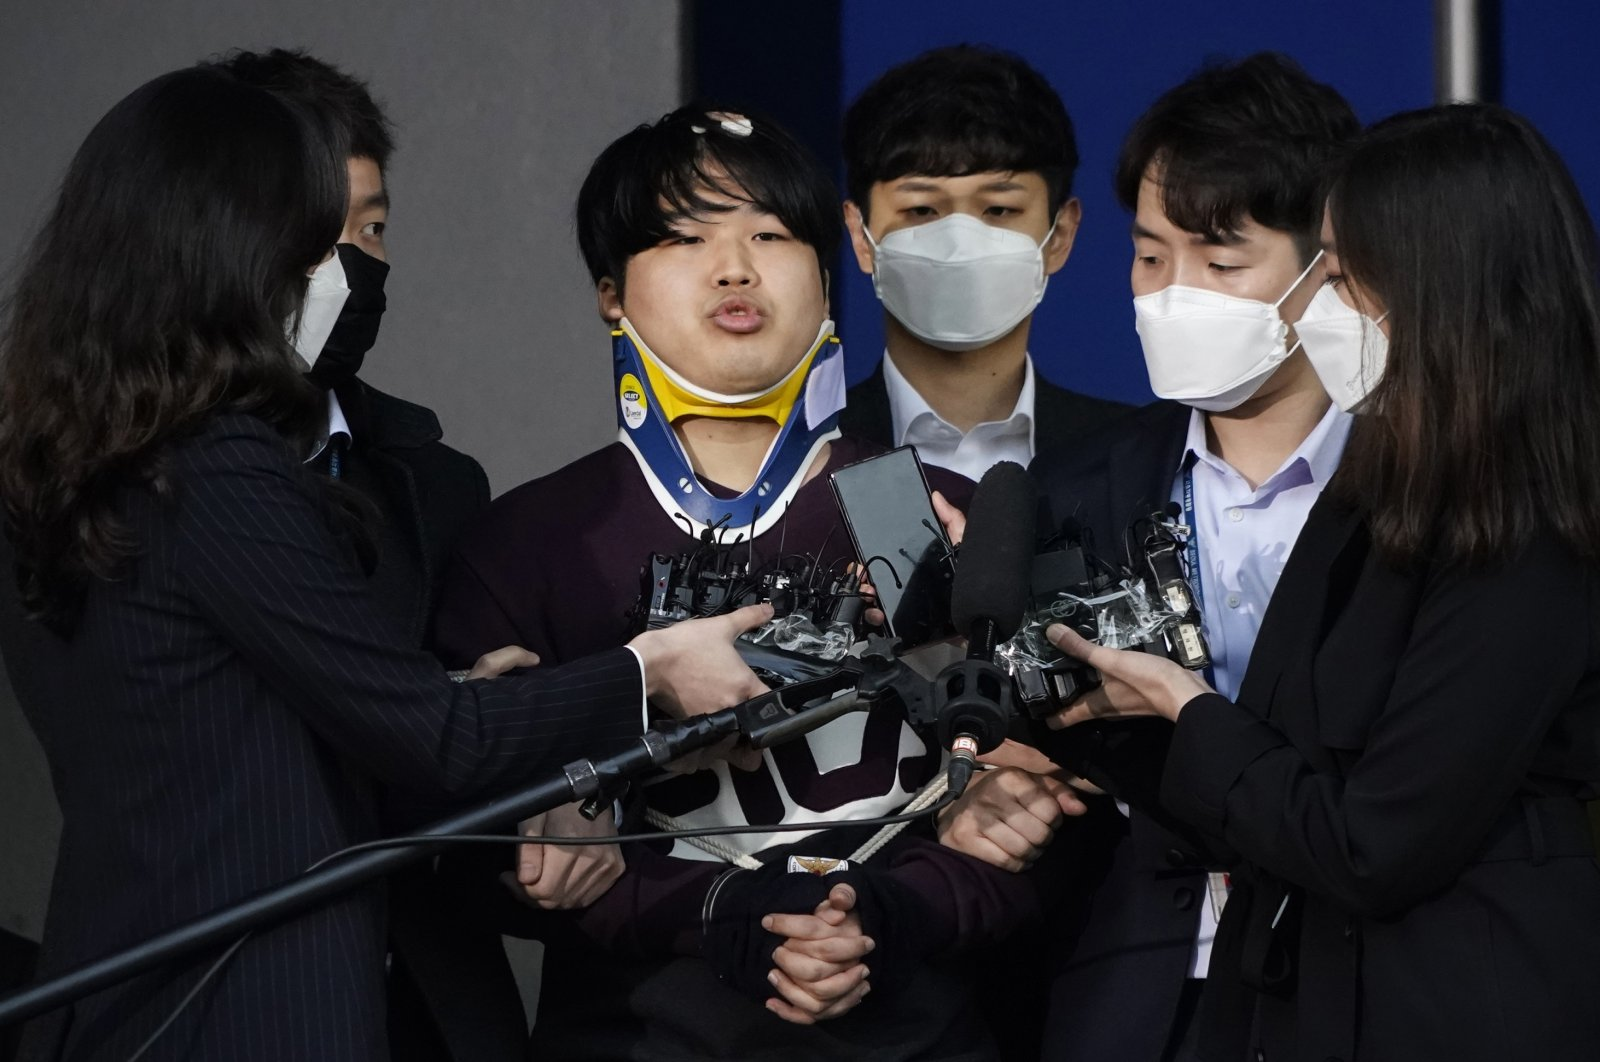 """Cho Ju-bin (C), leader of South Korea's online sexual blackmail ring called the """"Nth room,"""" is surrounded by journalists while walking out of a police station as he is transferred to the prosecutors' office for further investigation in Seoul, South Korea, March 25, 2020. (AP Photo)"""